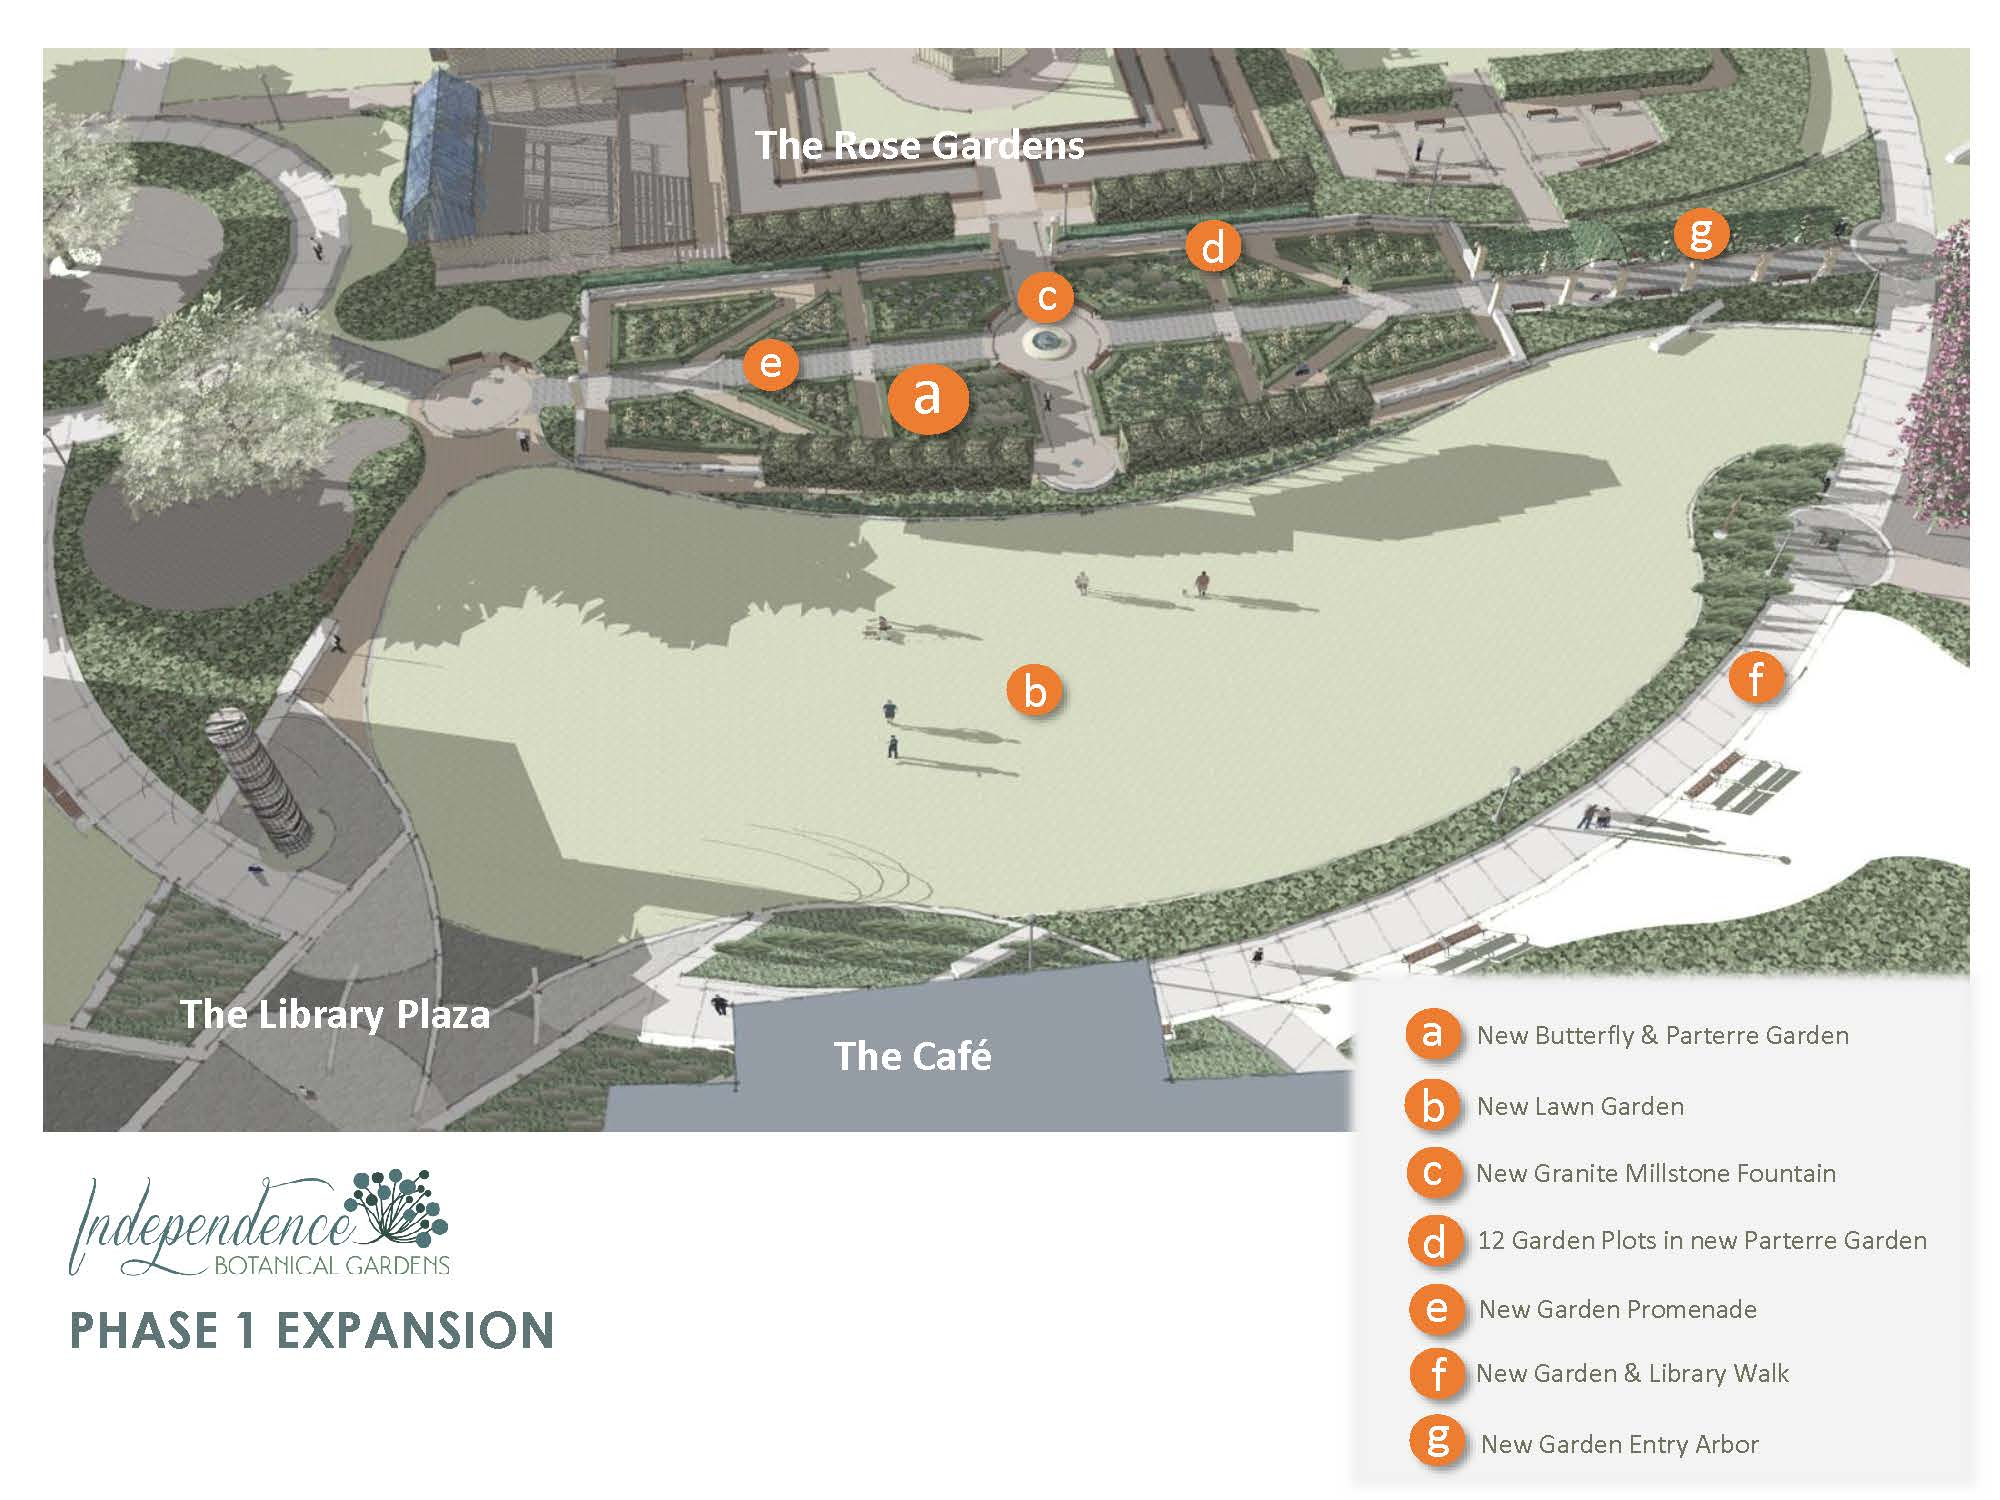 New Layout for expanded and improved Botanical Gardens at Independence